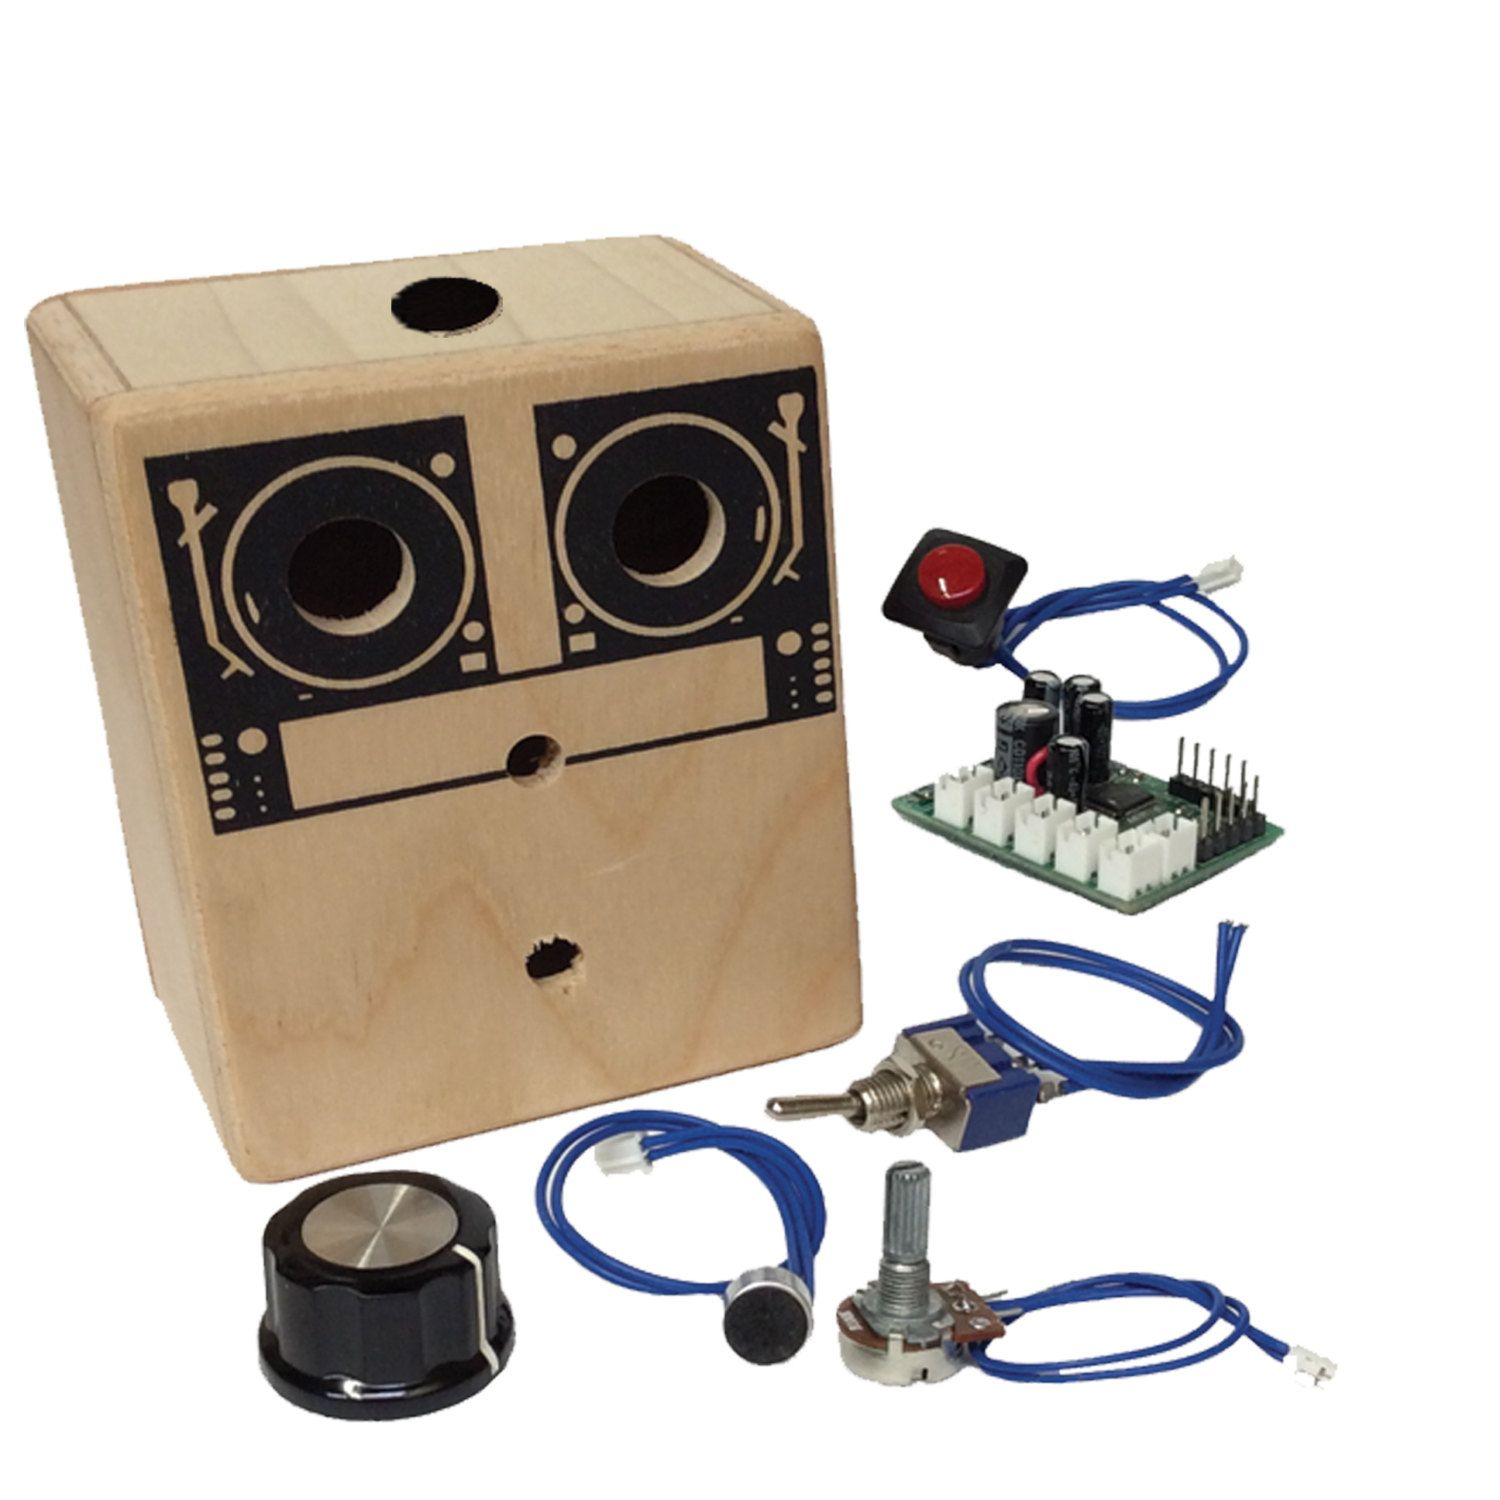 DIY (kit) - build your own recording device with loop switch pitch control & output